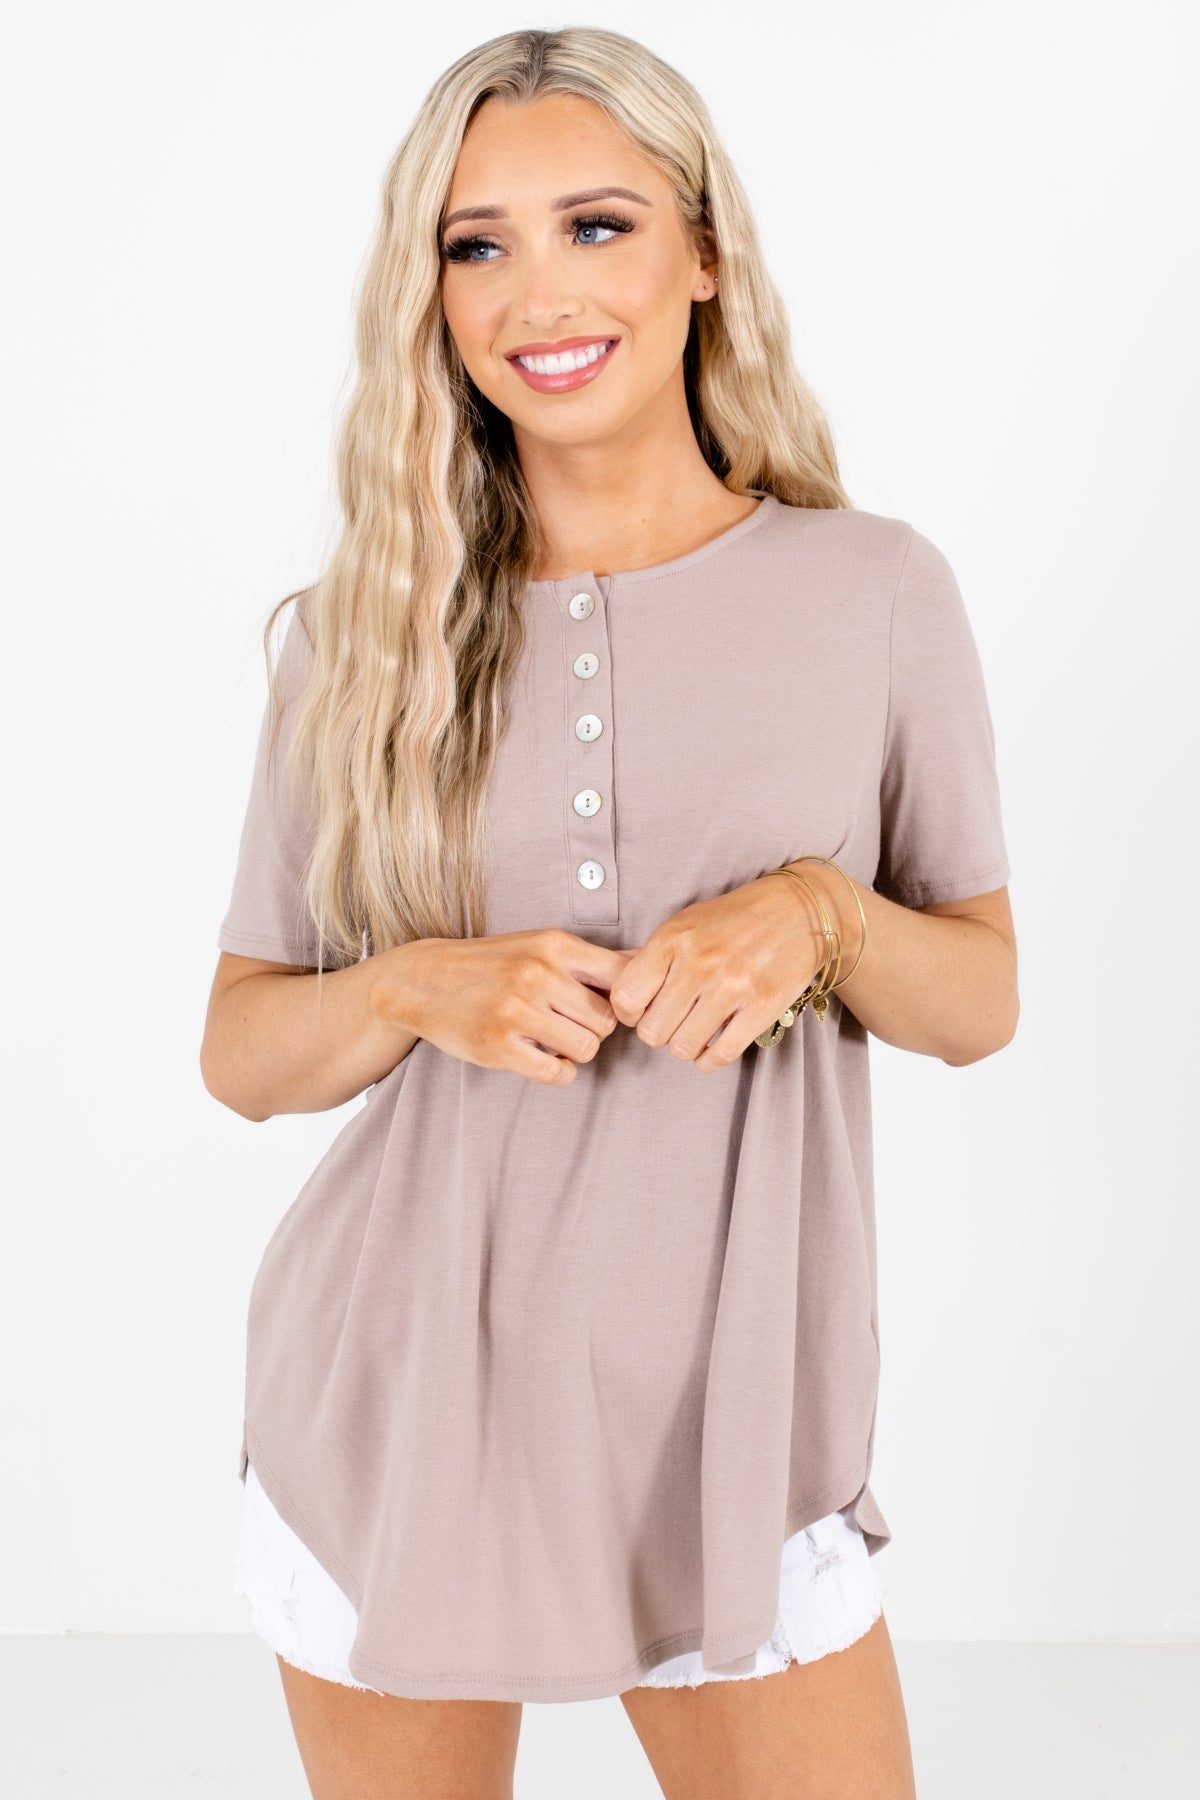 Brown Decorative Button Boutique  Blouses for Women